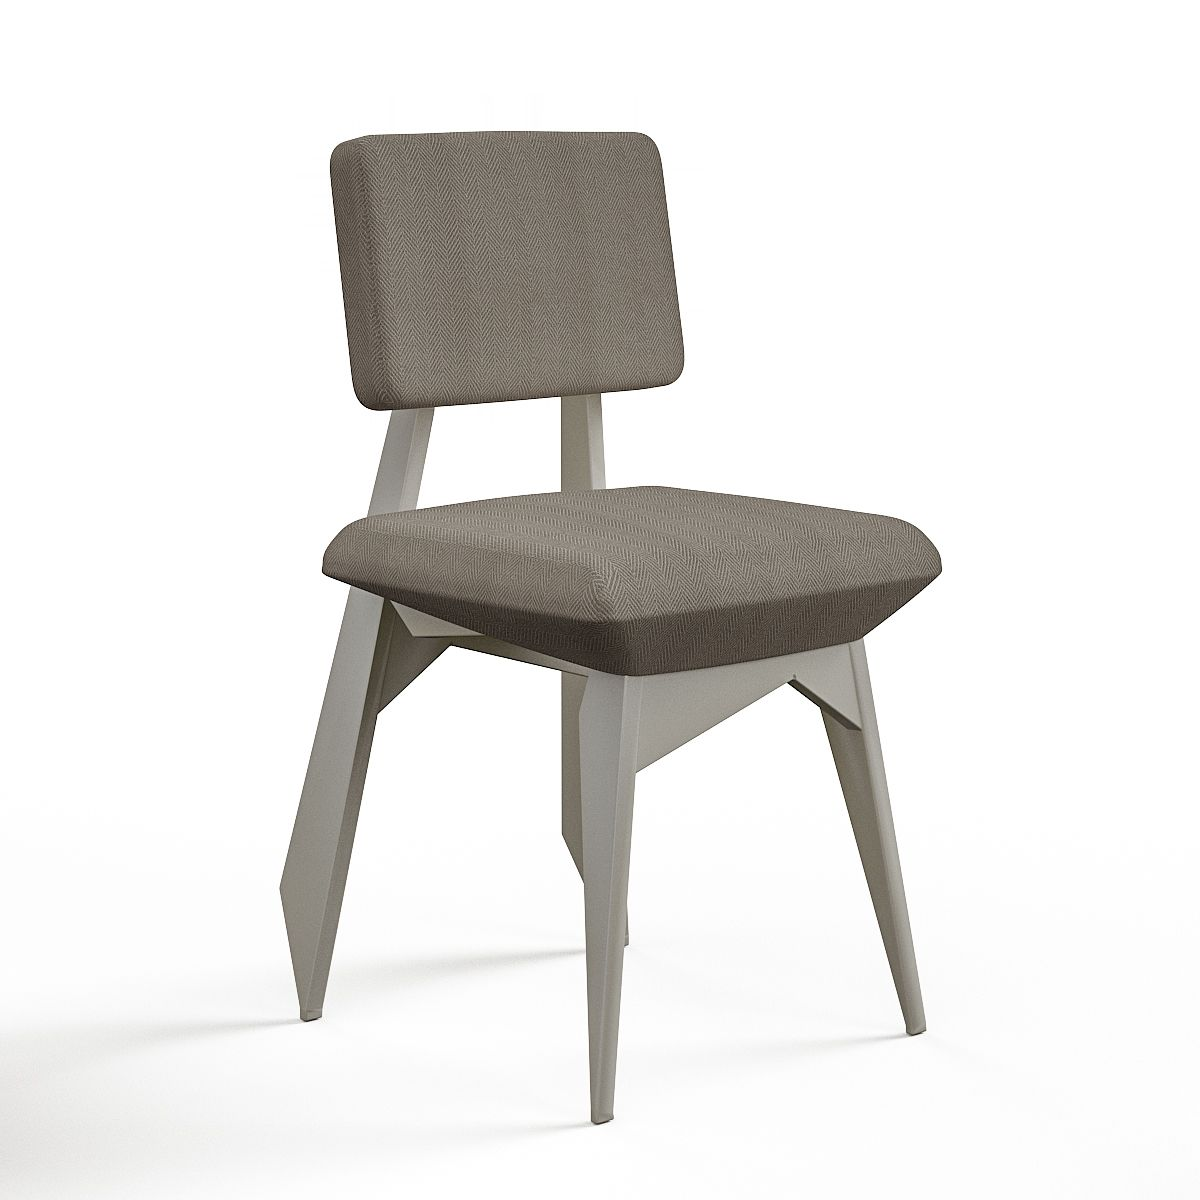 Furniture Collection 690